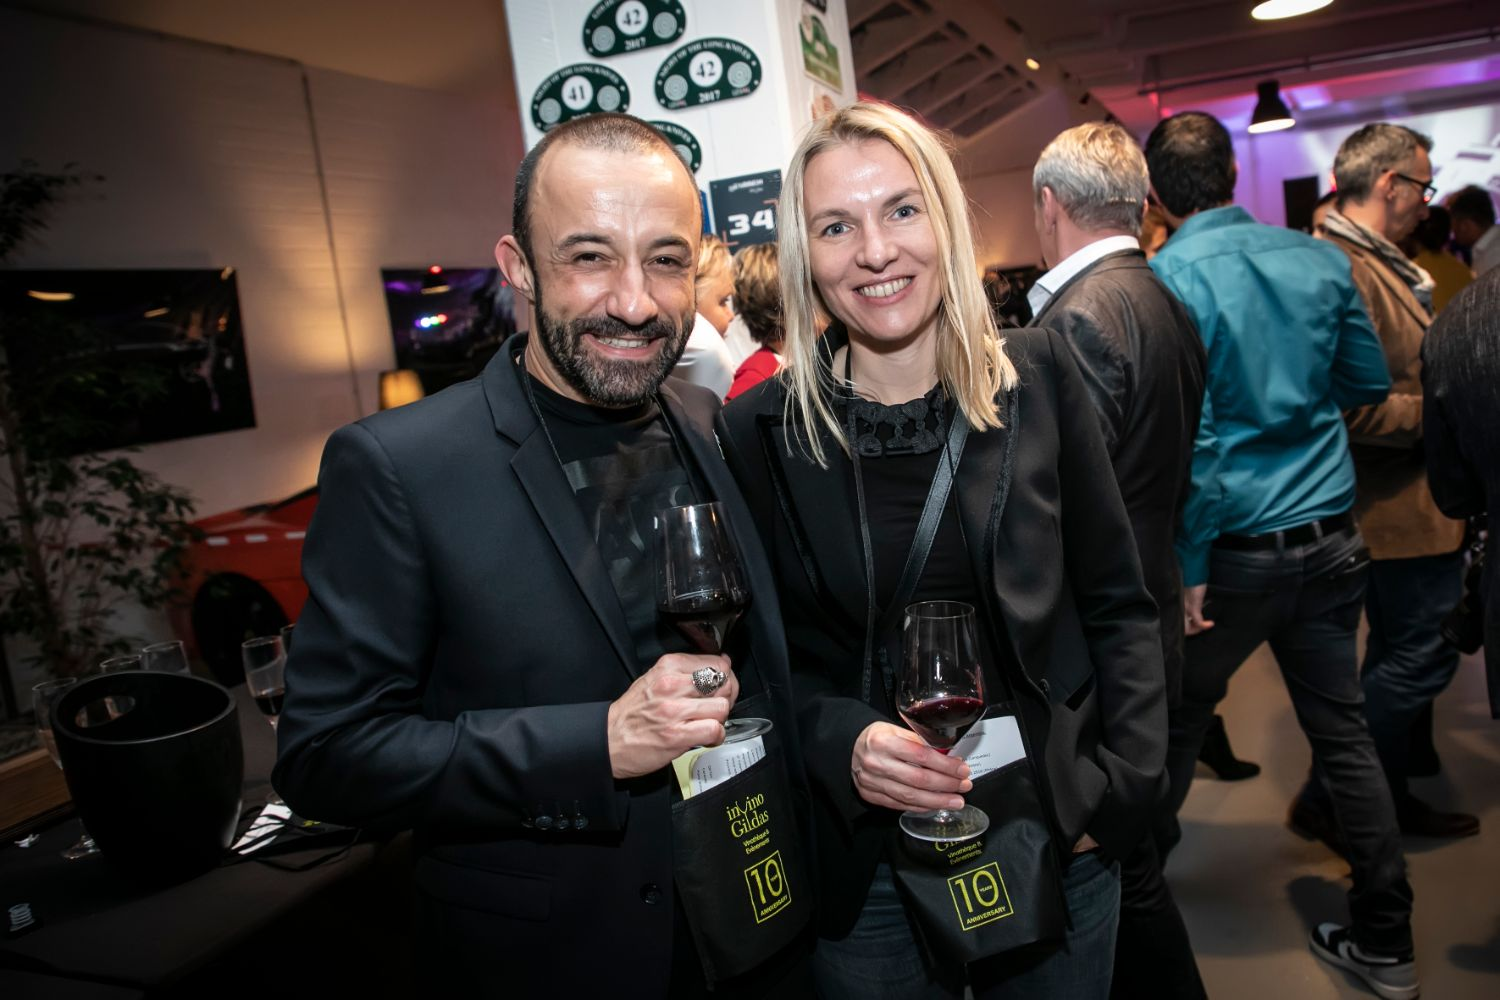 In Vino Gildas 10 year anniversary - Smiling Faces - Photo by Laurent Antonelli